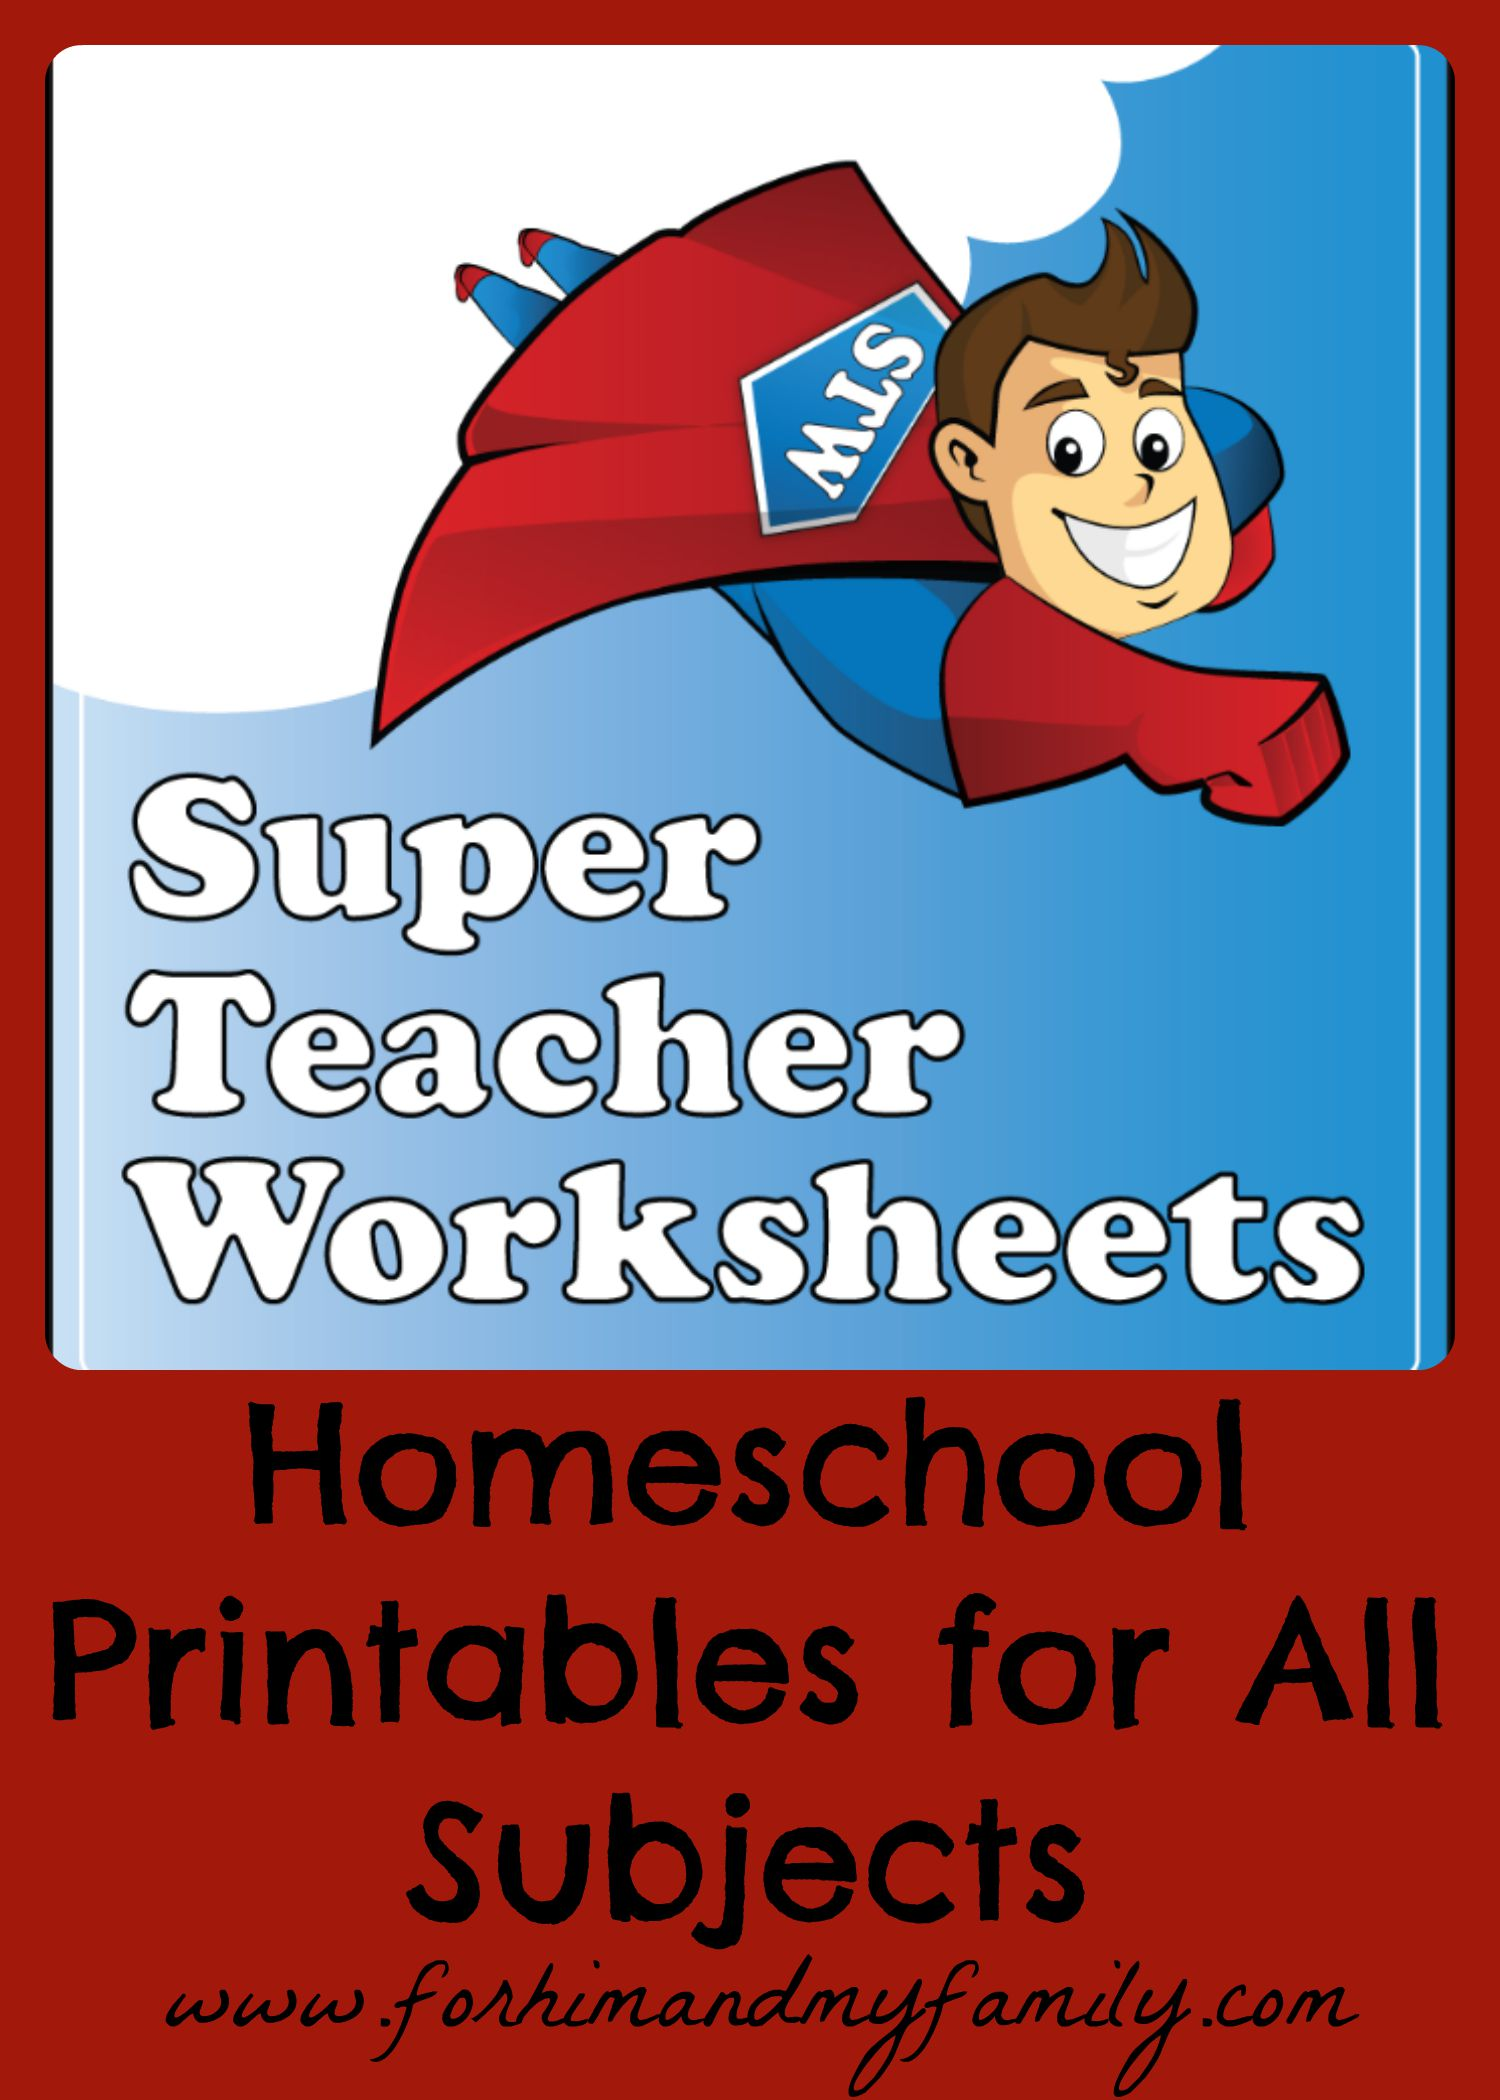 Homeschool Printables For All Subjects Tos Crew Review